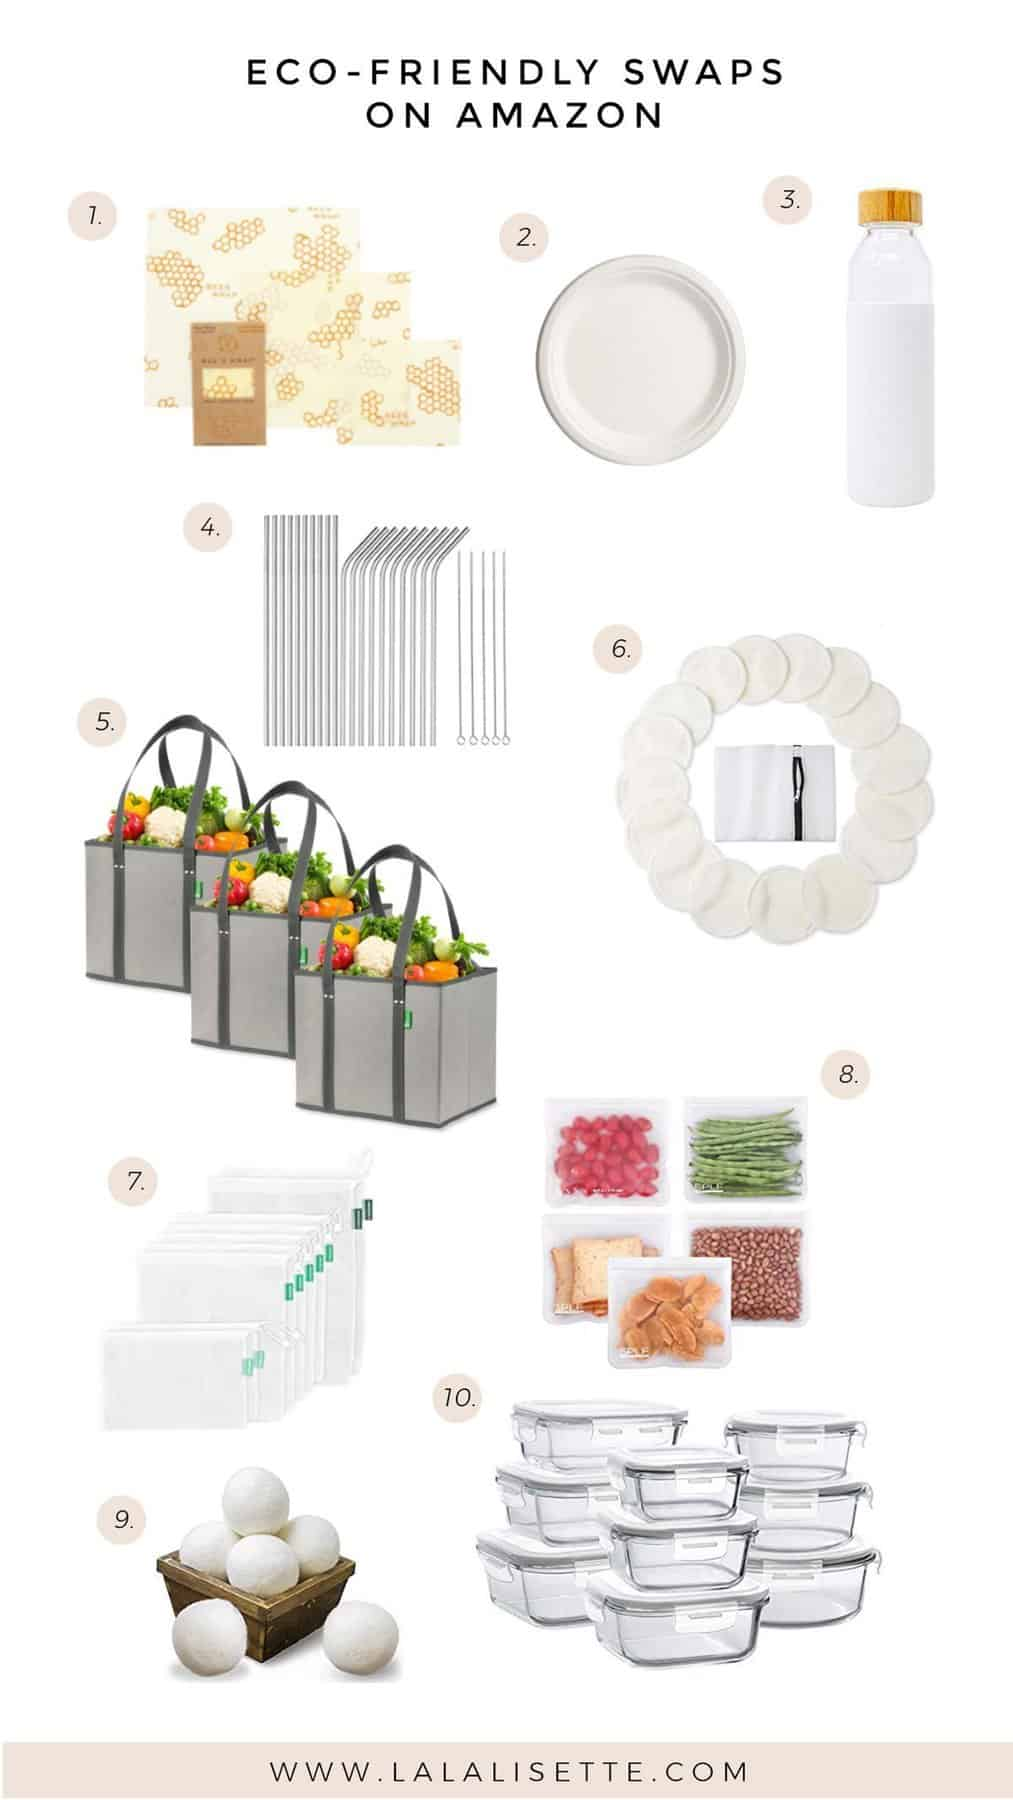 graphic with eco-friendly products with title: eco-friendly swaps on amazon